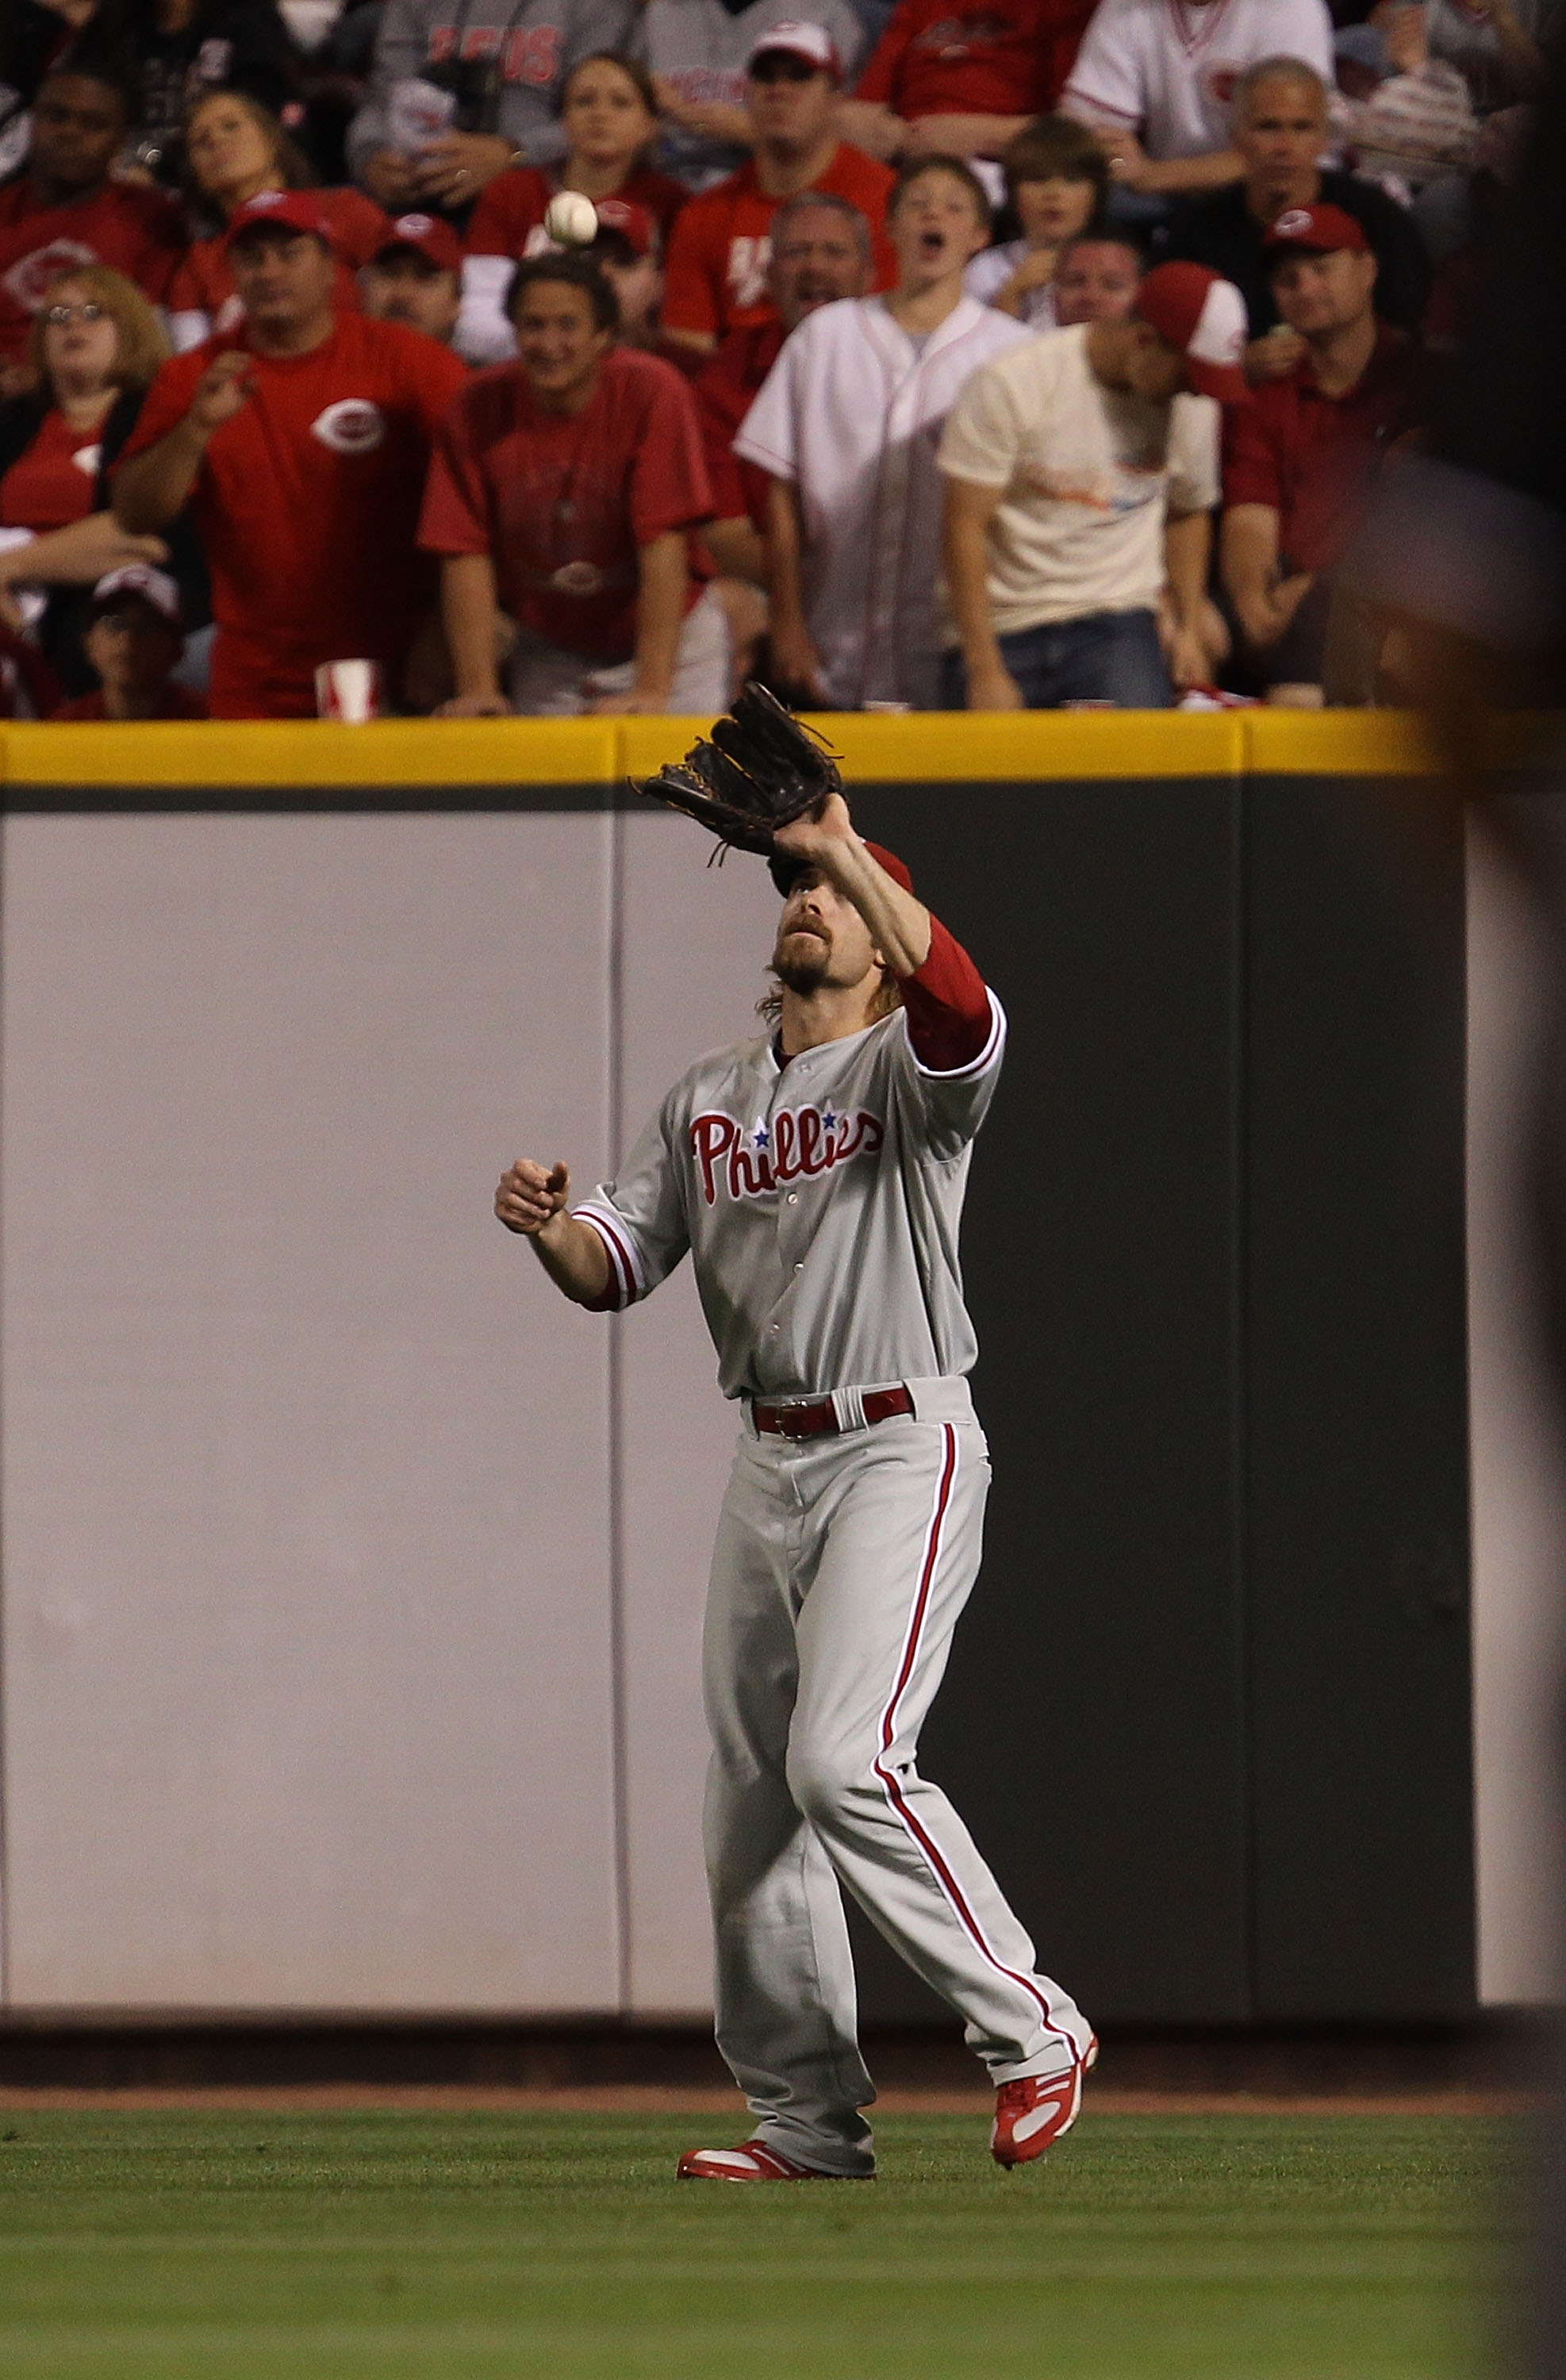 NLCS Breakdown: Comparing The Giants and Phillies